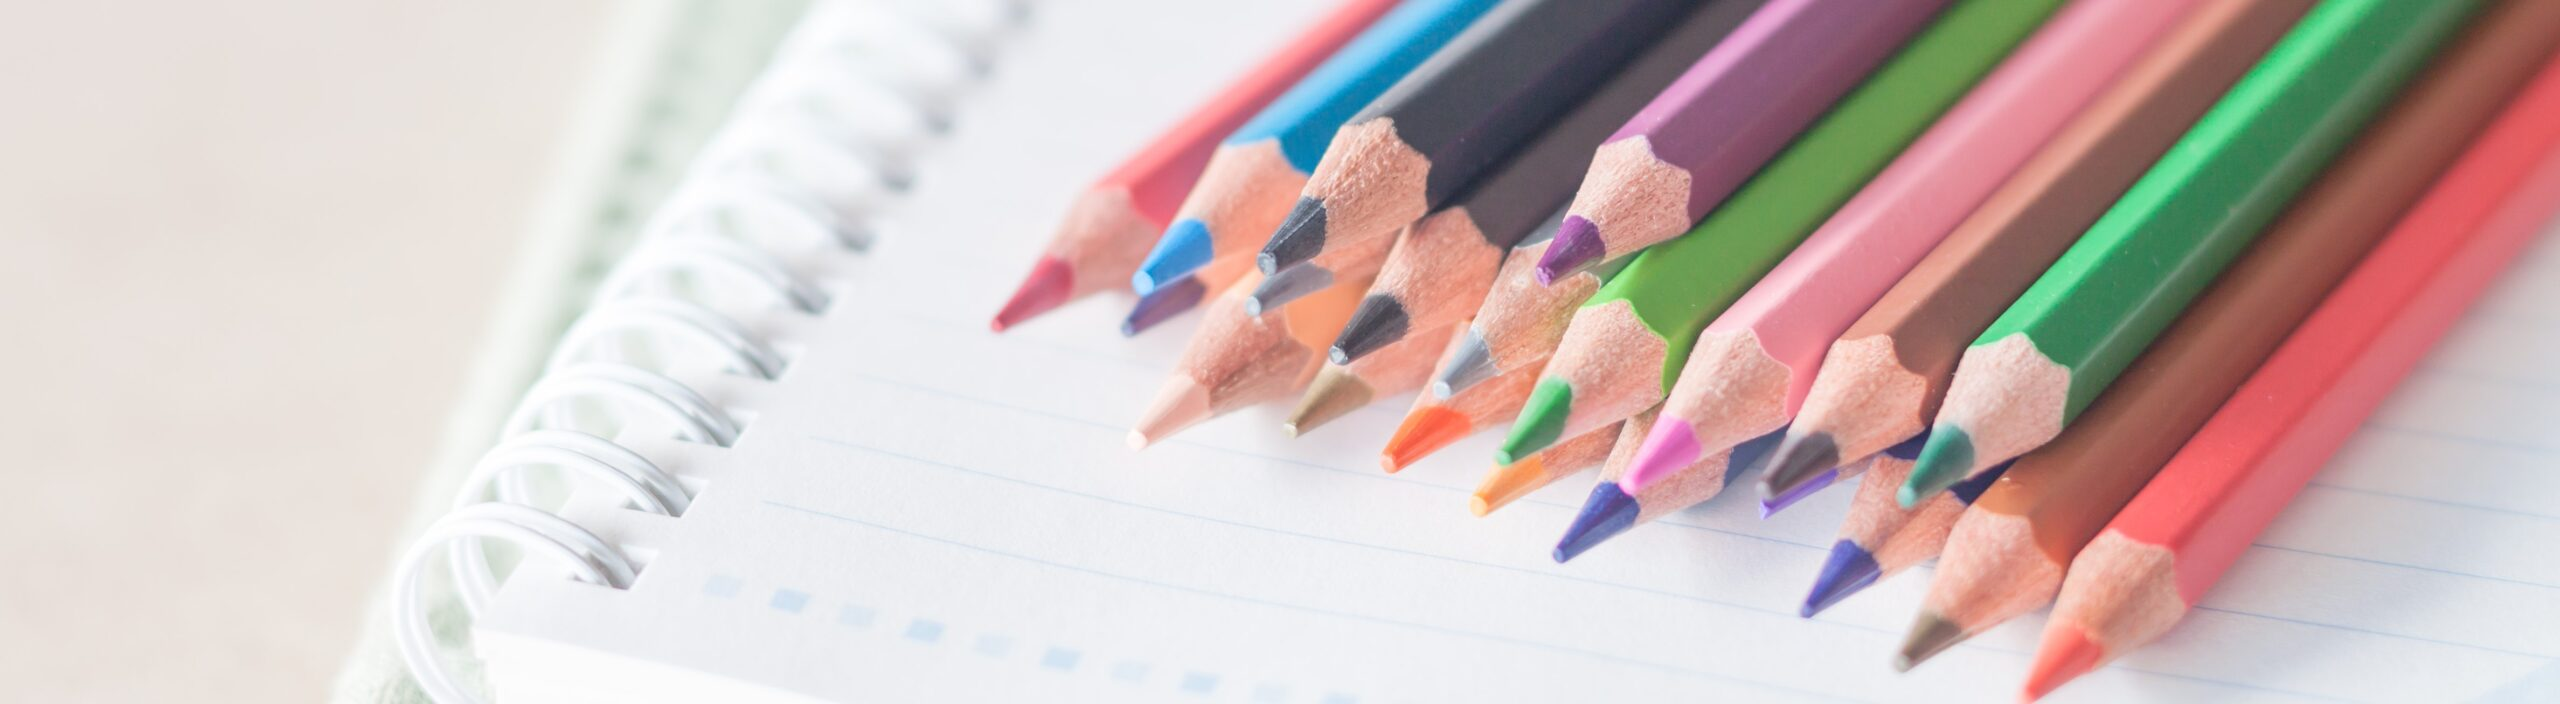 Closeup colorful pencil crayons on spiral notebook and green notebook, stock photo